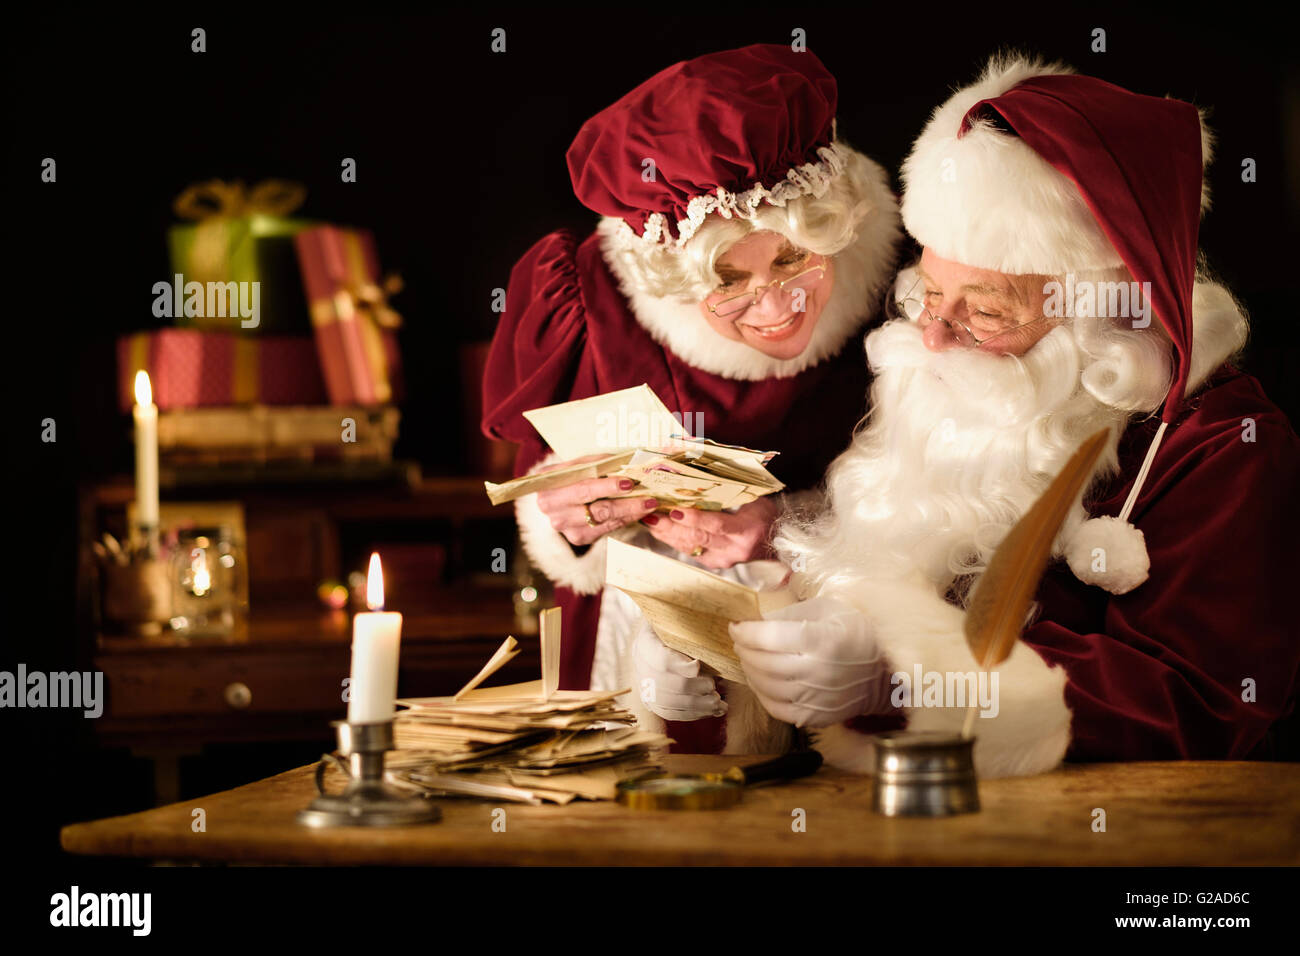 Santa and Mrs. Claus reading child's letter - Stock Image